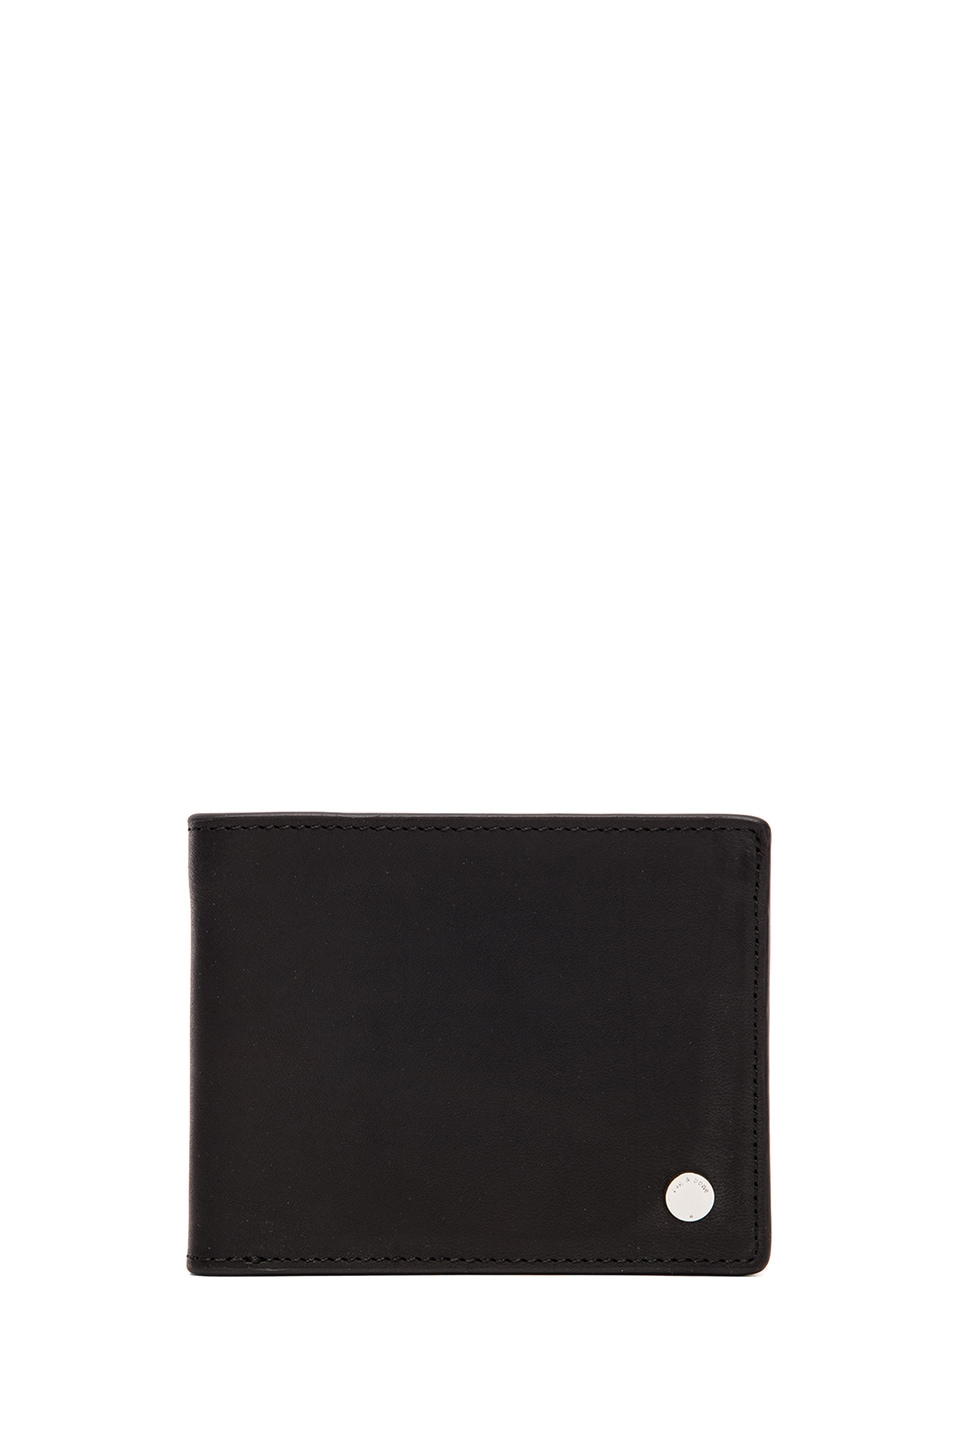 Rag & Bone Bi Fold Wallet in Black Leather